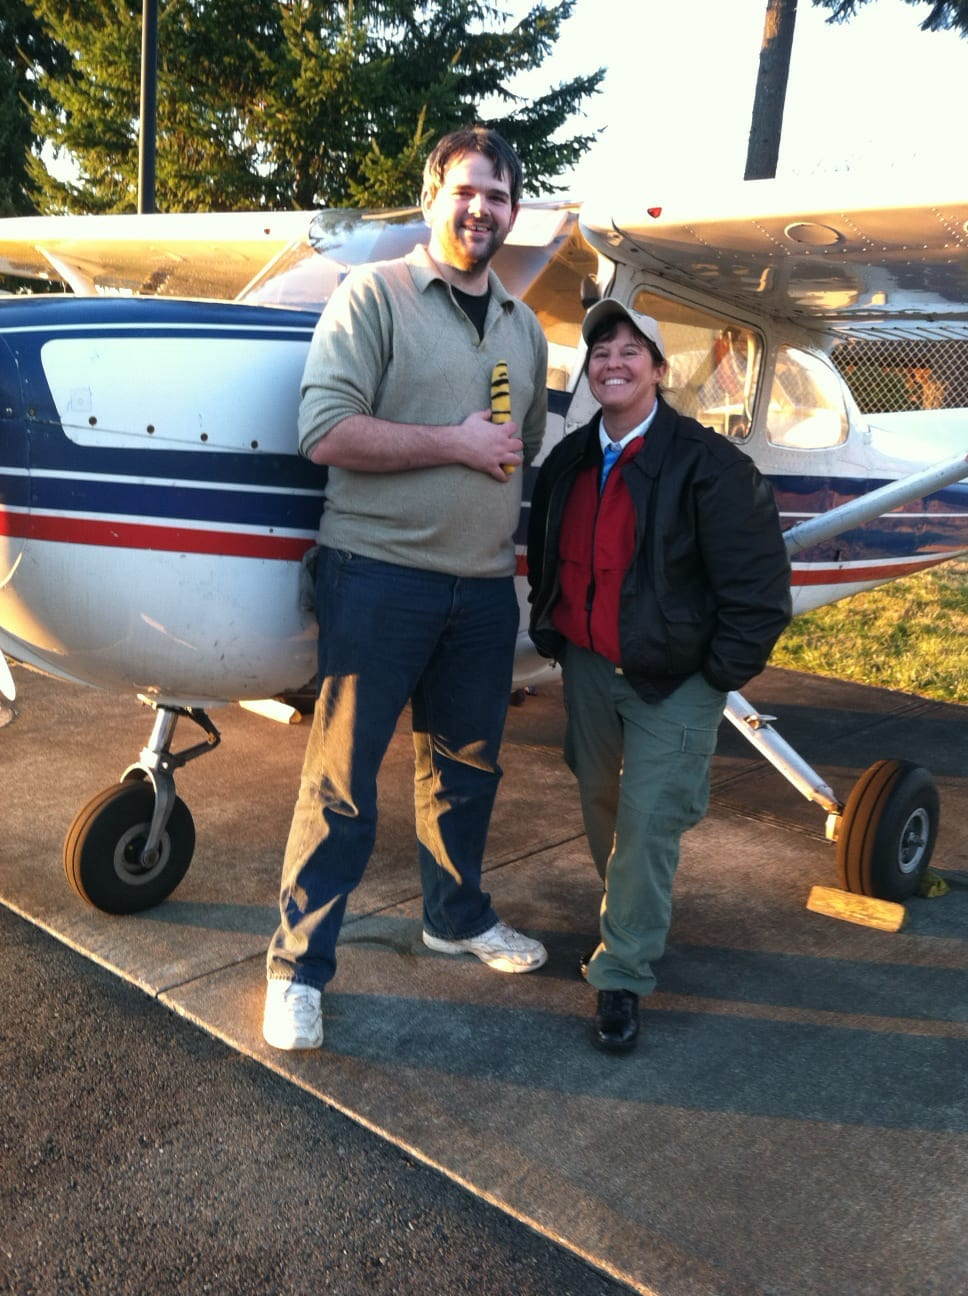 First solo: The CFI's perspective